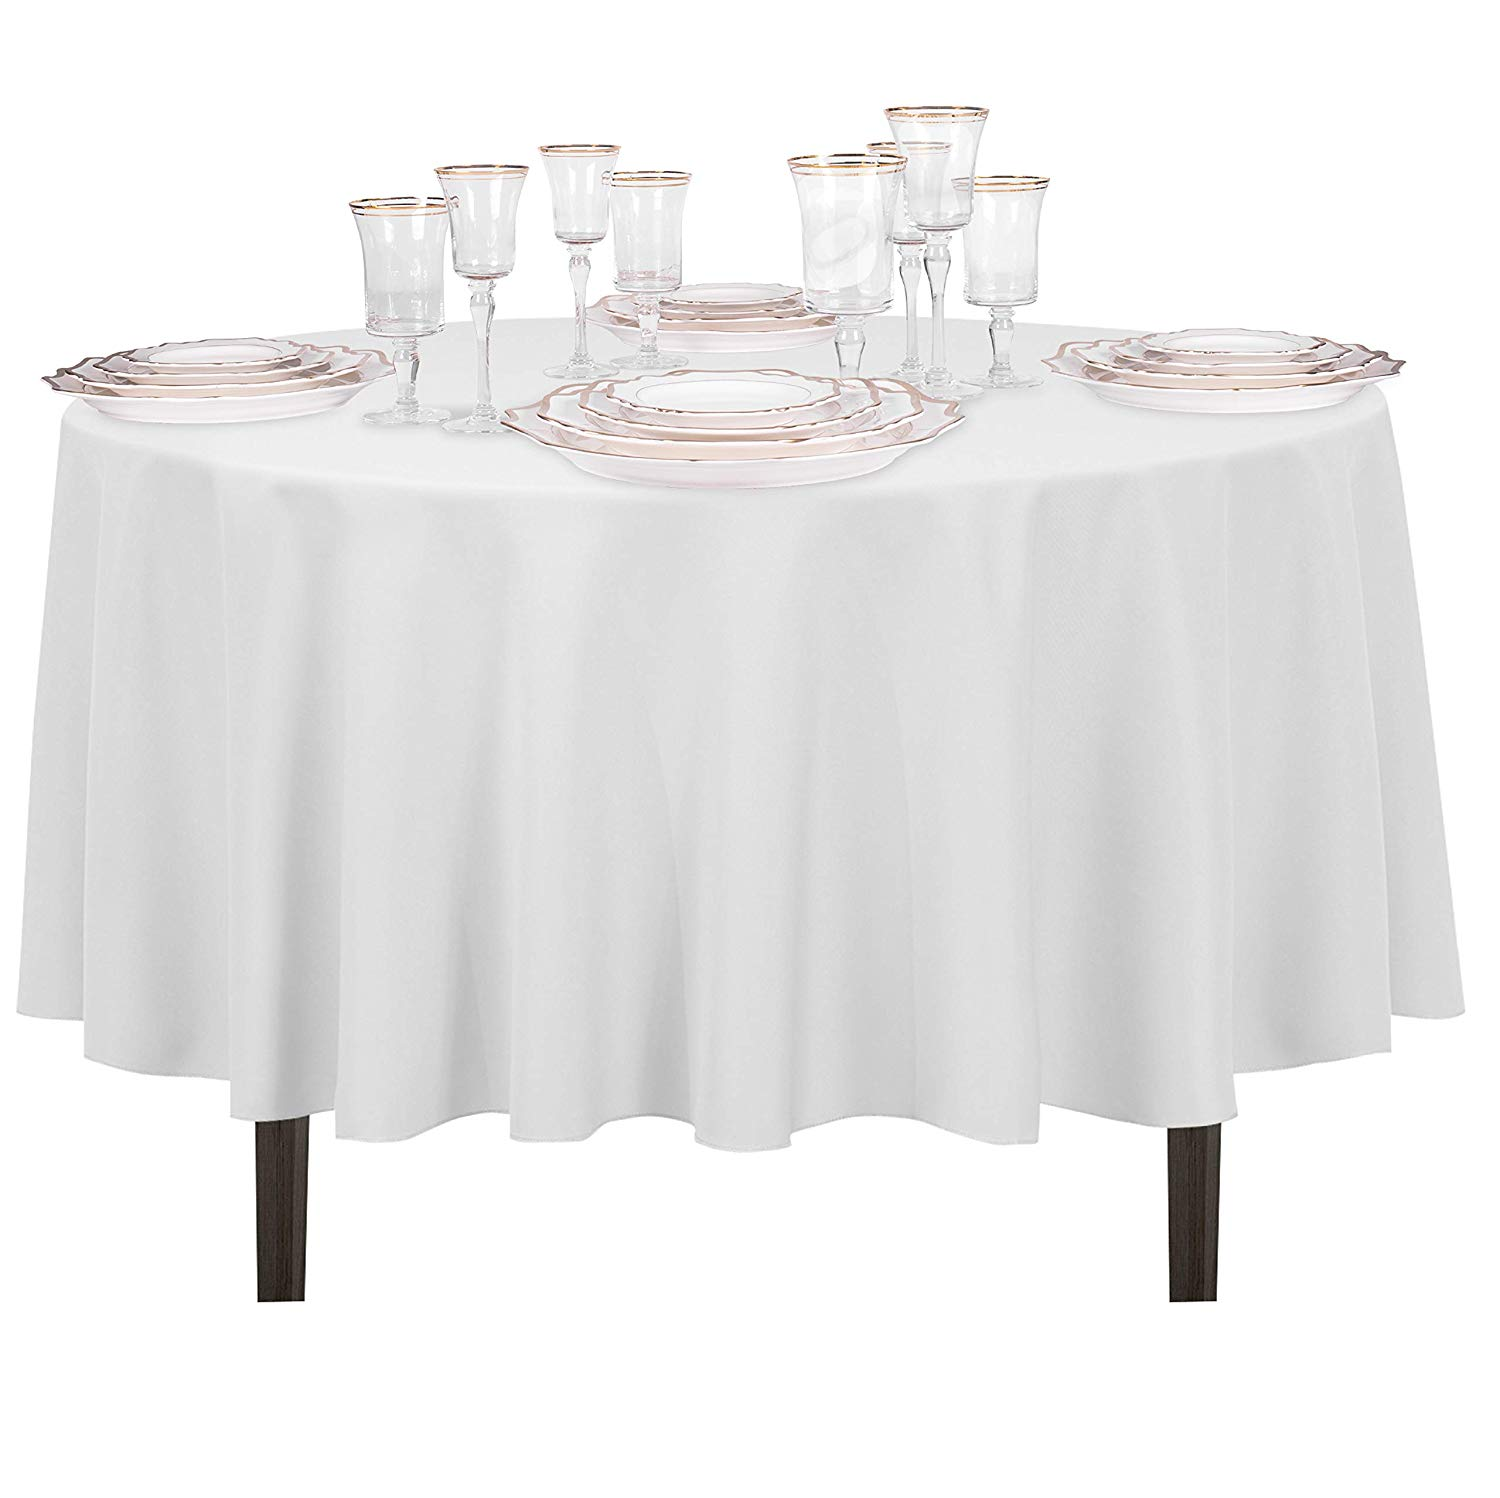 measure table putting vinyl inches small plastic tablecloth target tree tablecloths kmart bulk dollar for square inch round standard linen accent sizes full size drop leaf barista